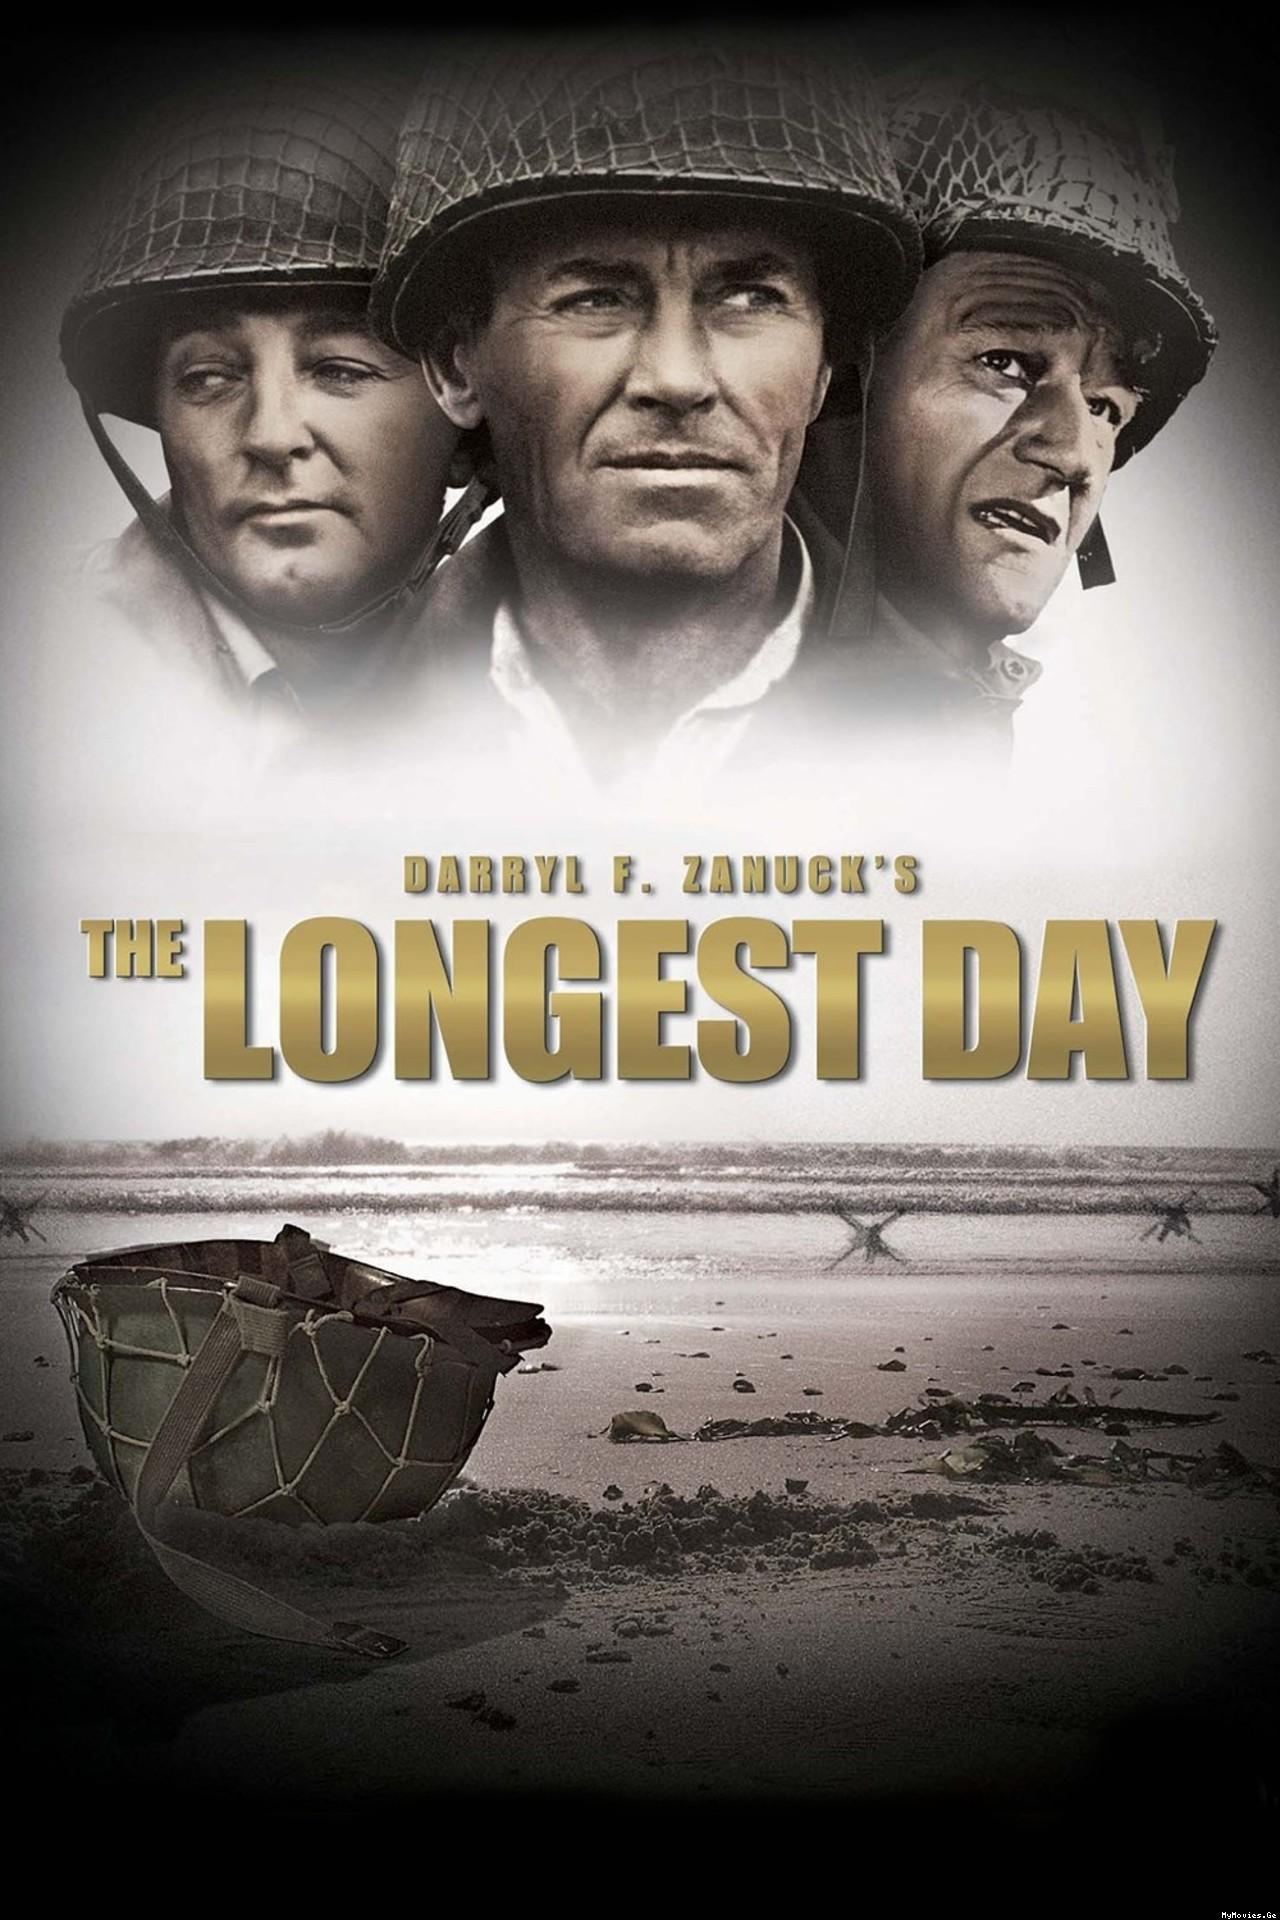 the longest day Paul anka - the longest day lyrics many men came here as soldiers many men will pass this way many men will count the hours as they live the longest day.